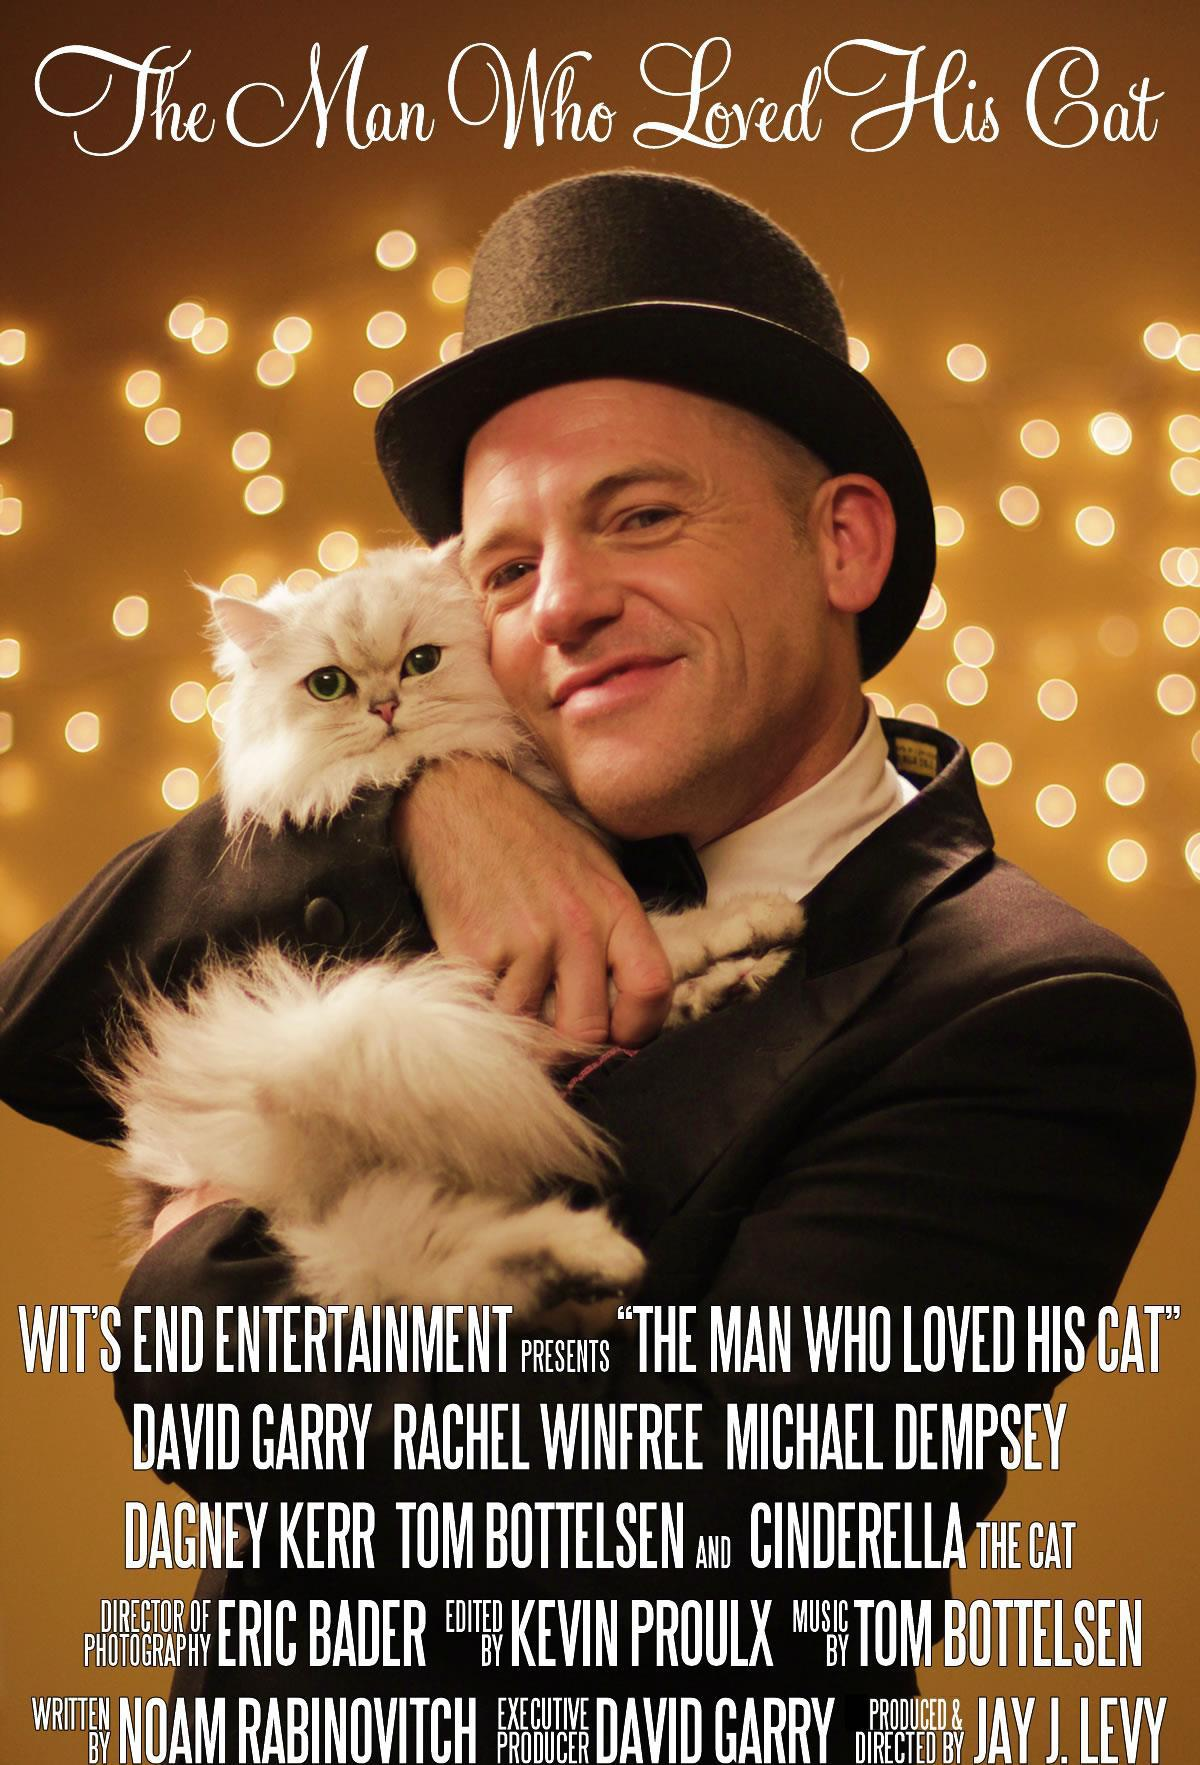 Cinderella starring in, The Man Who Loved His Cat!